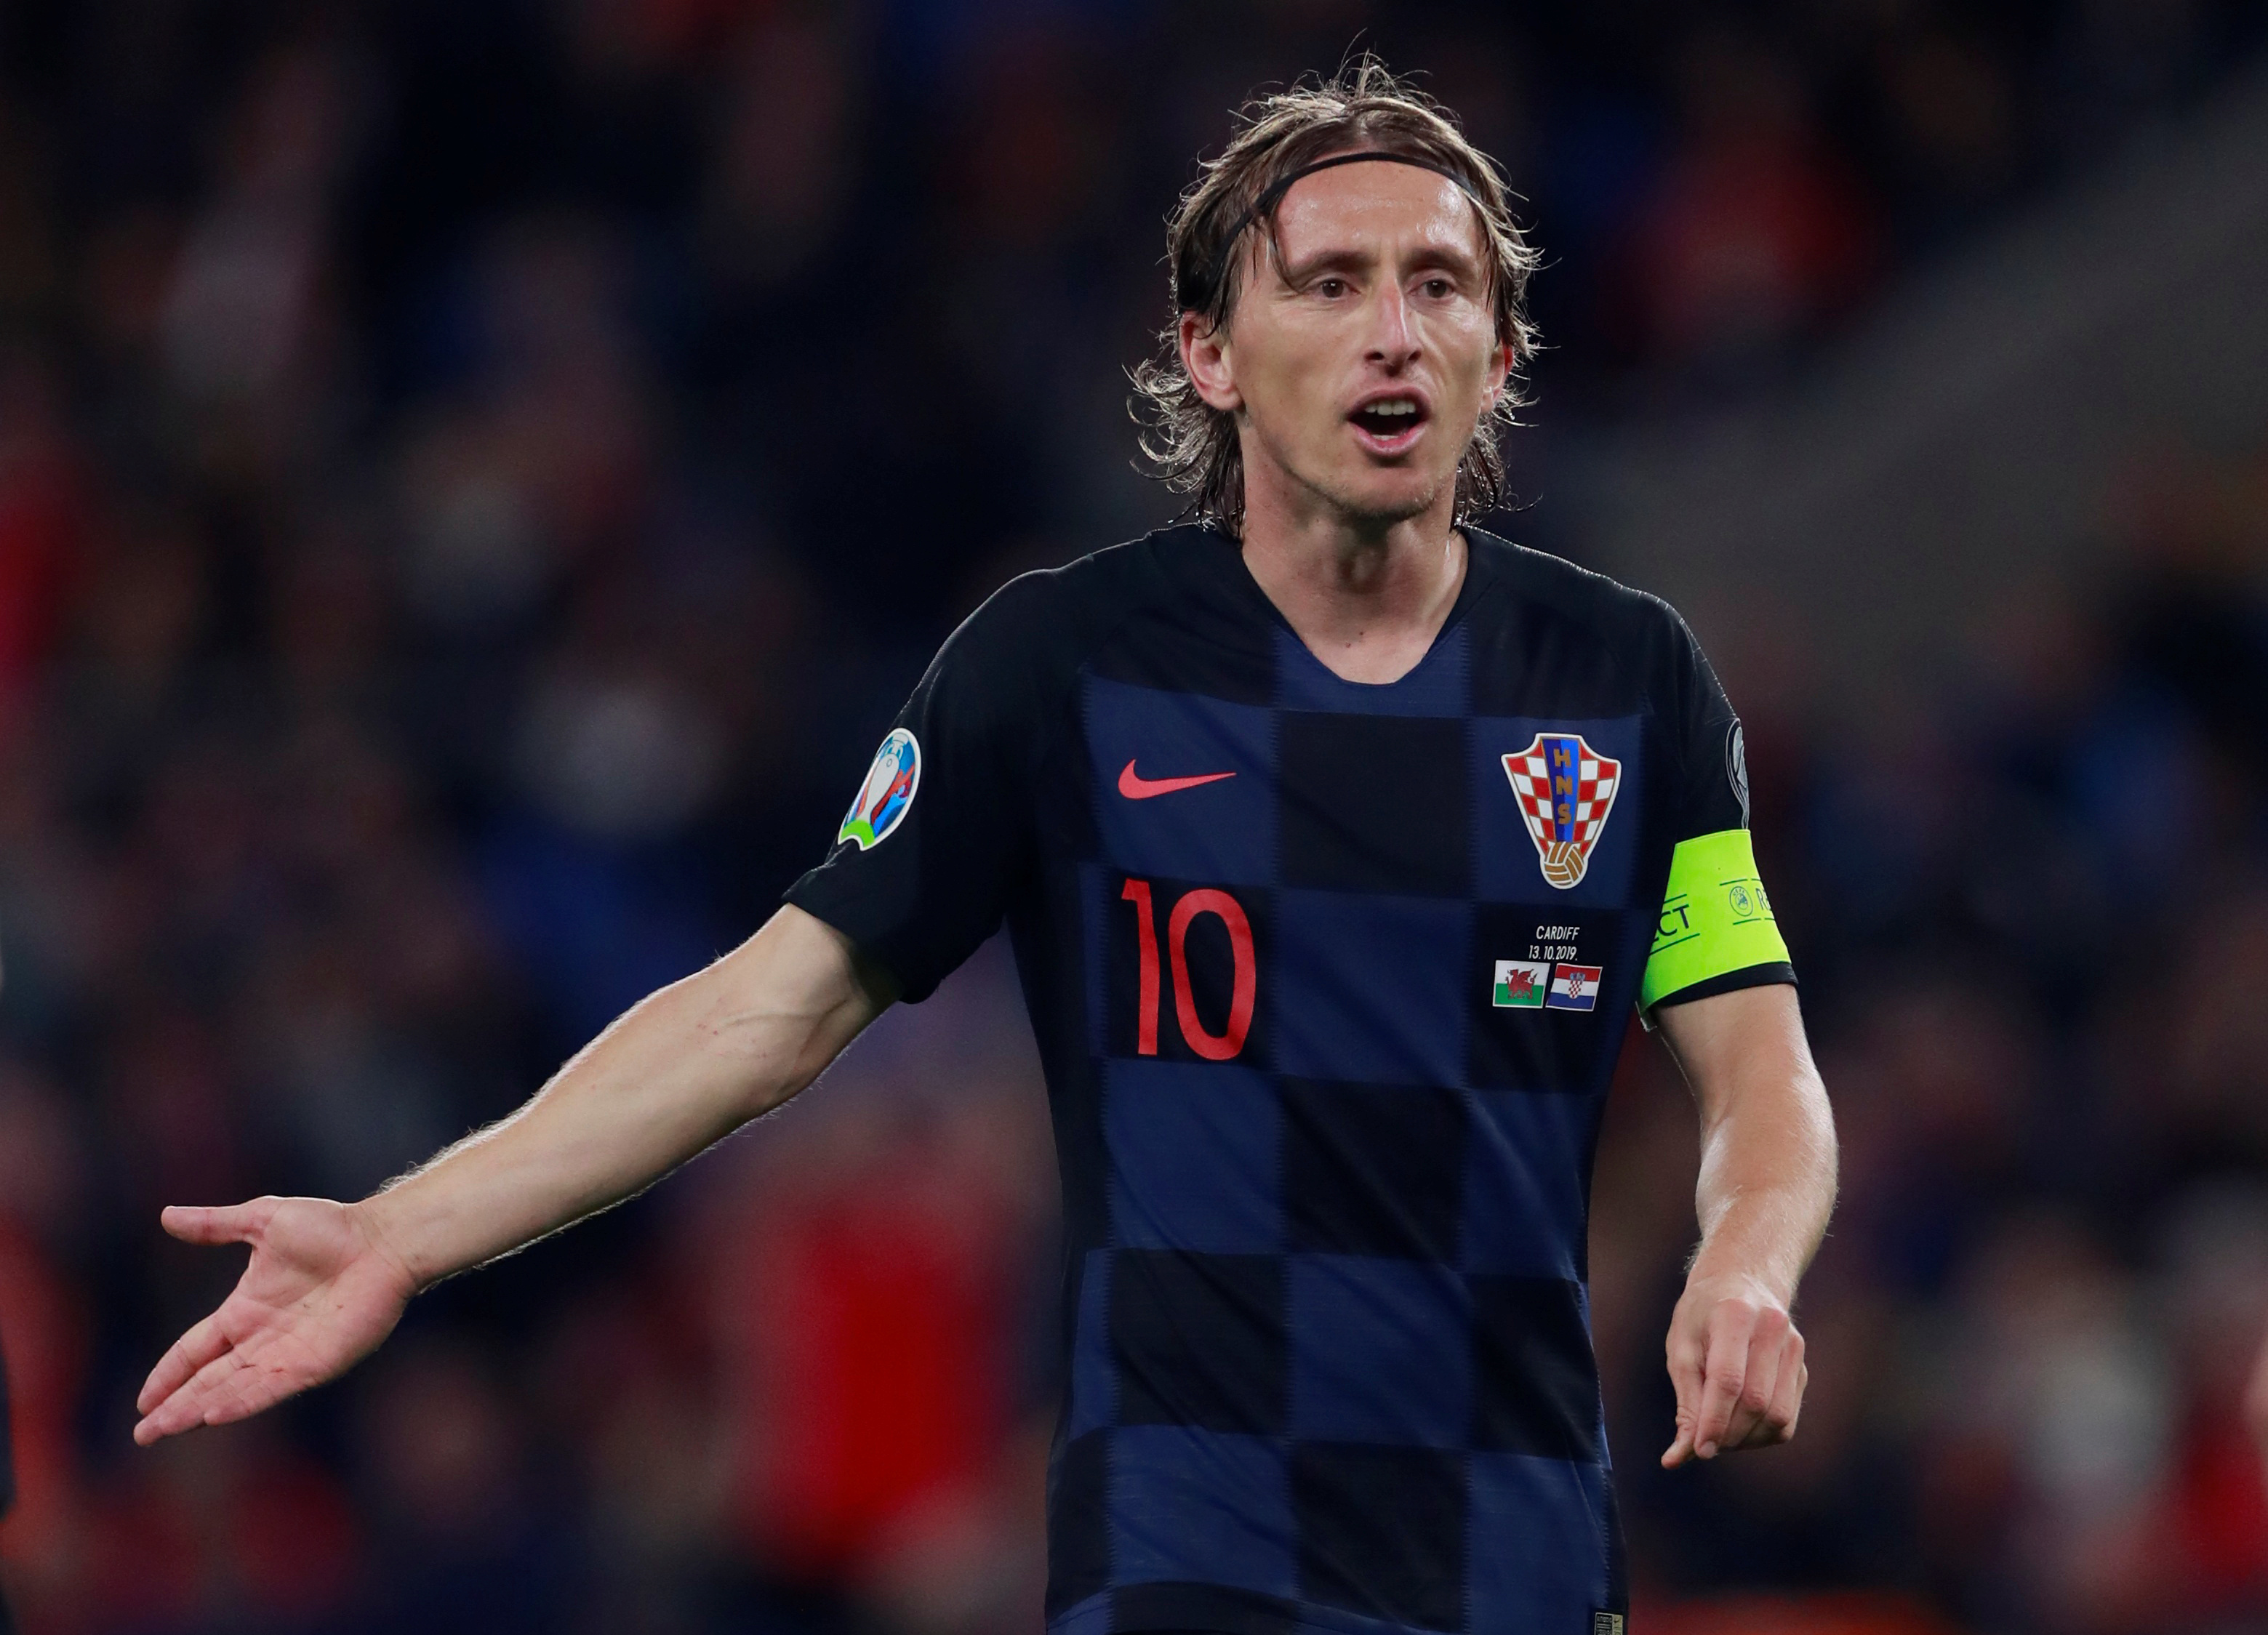 Real Madrid confirm Luka Modric sidelined with muscle injury